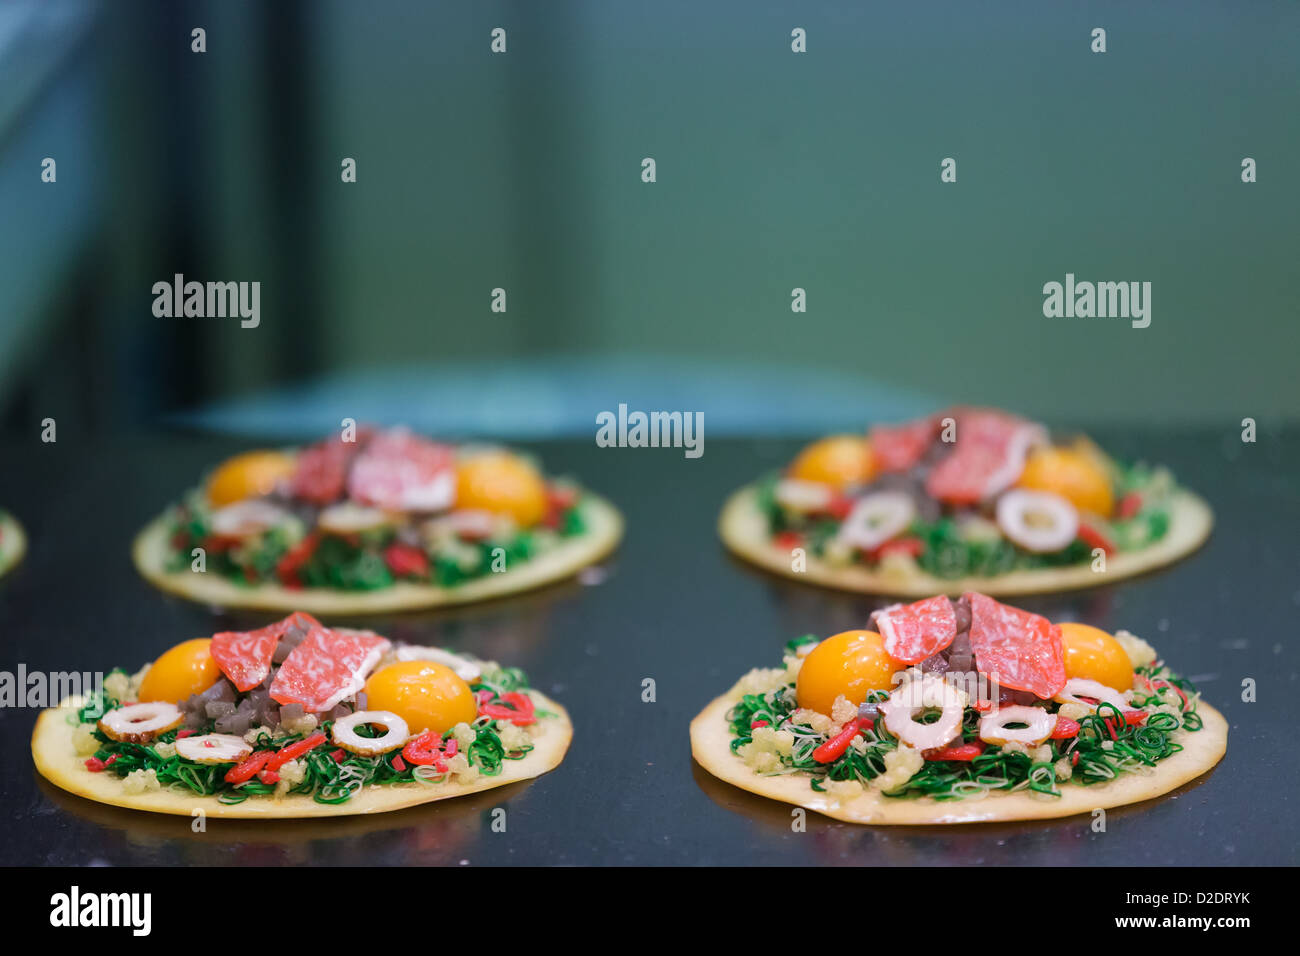 Japanese pie specialty in Kytoto retsaurant, Japan - Stock Image